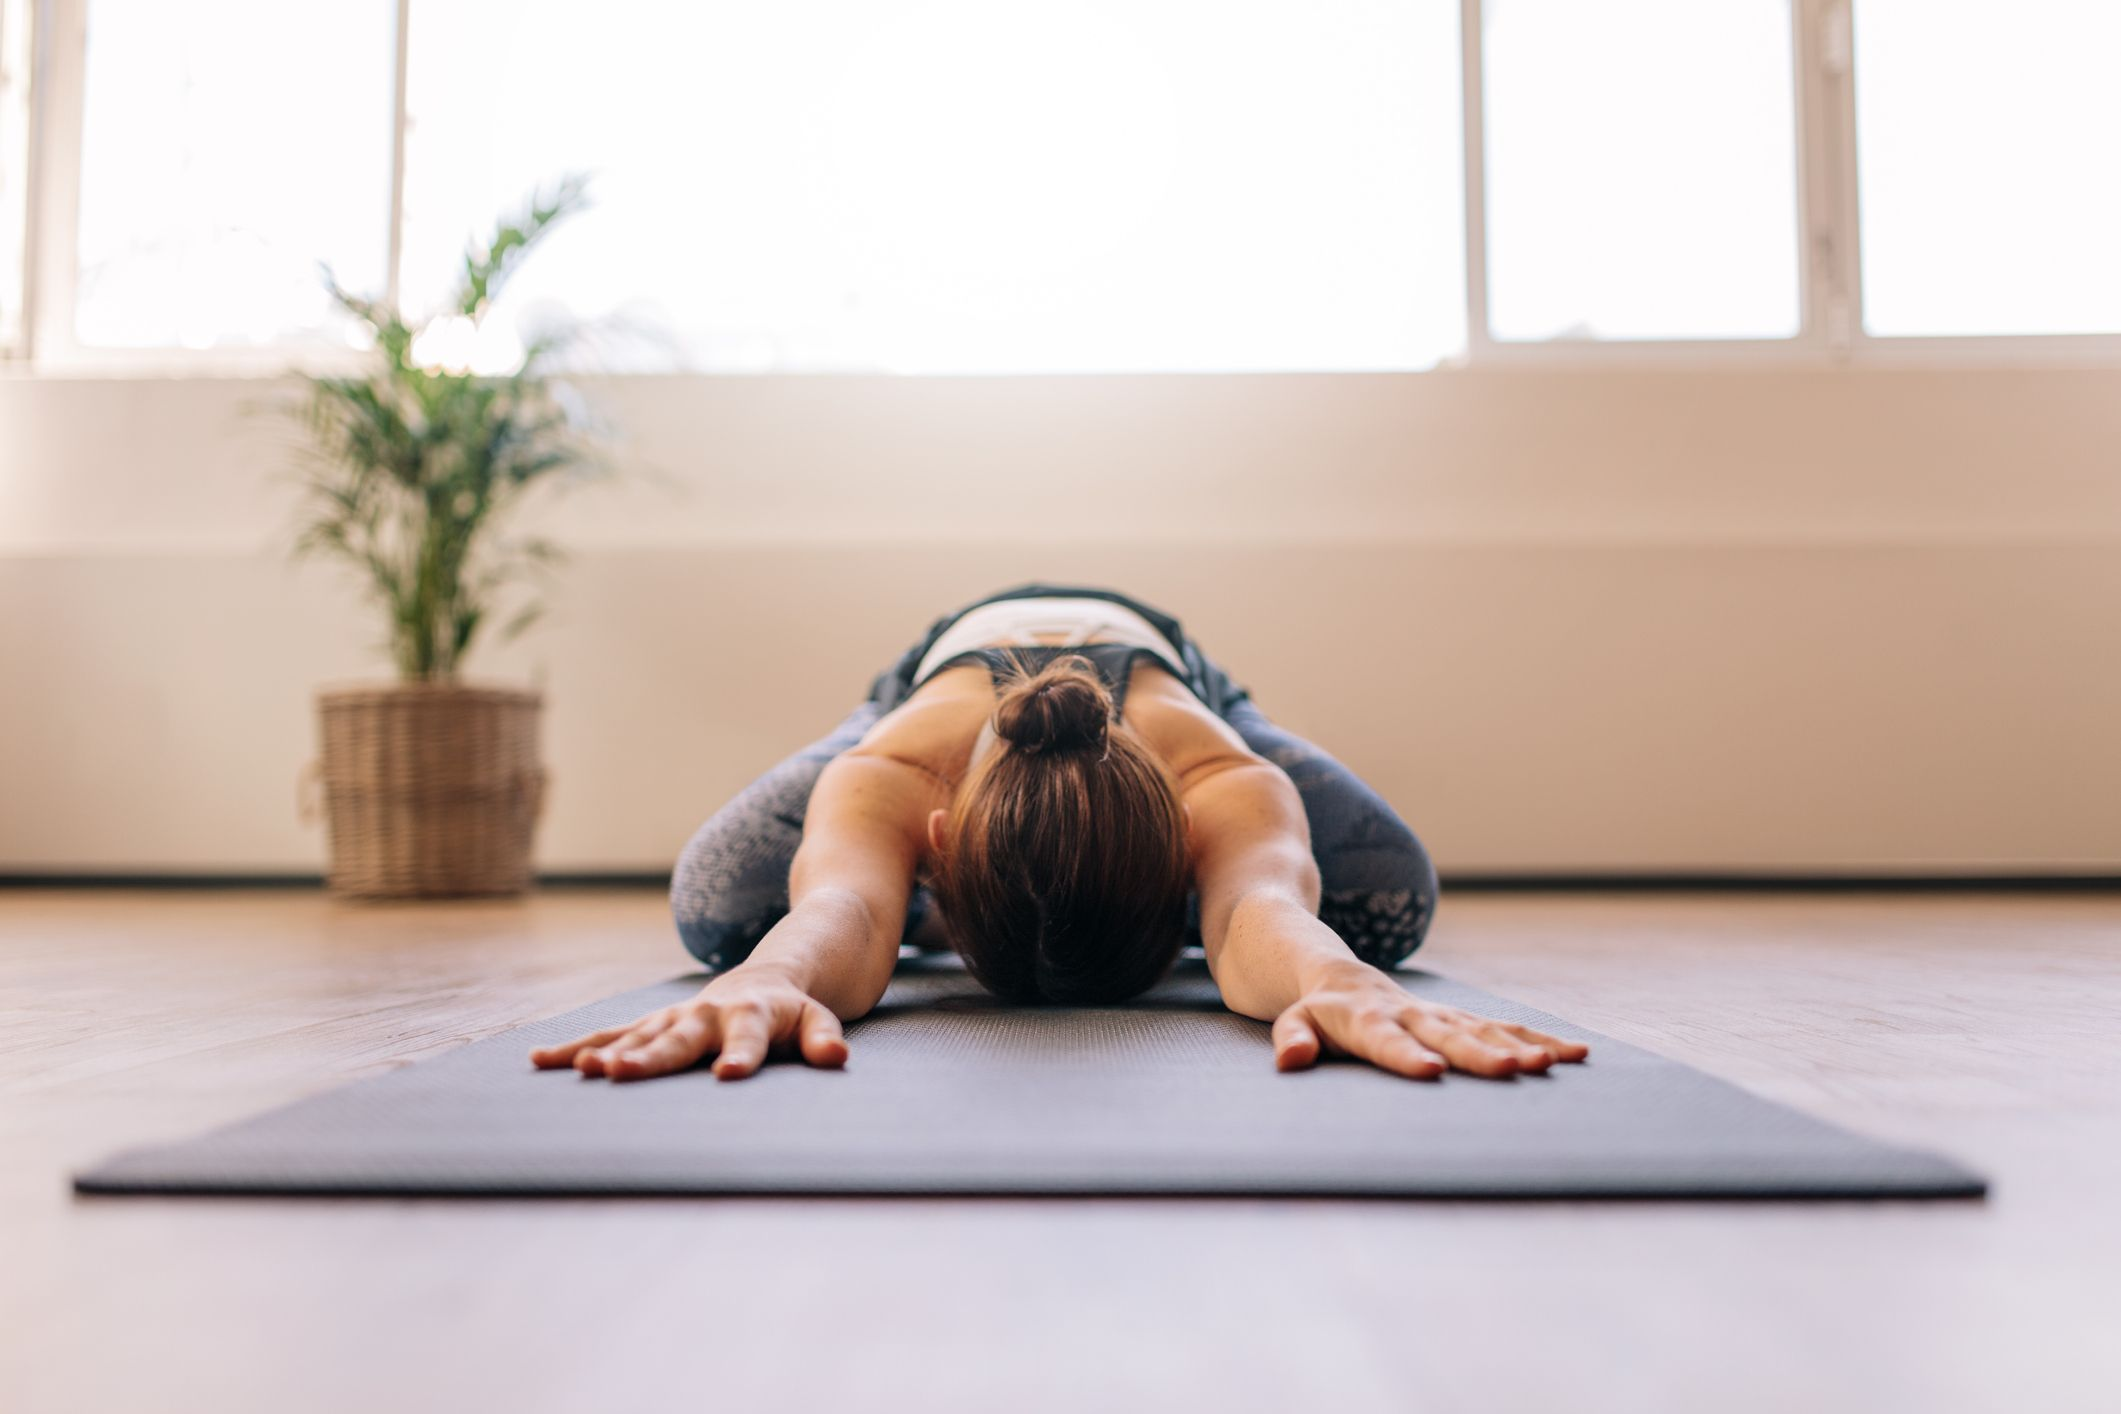 Yoga For Everyone: What You Need to Know as a Newbie